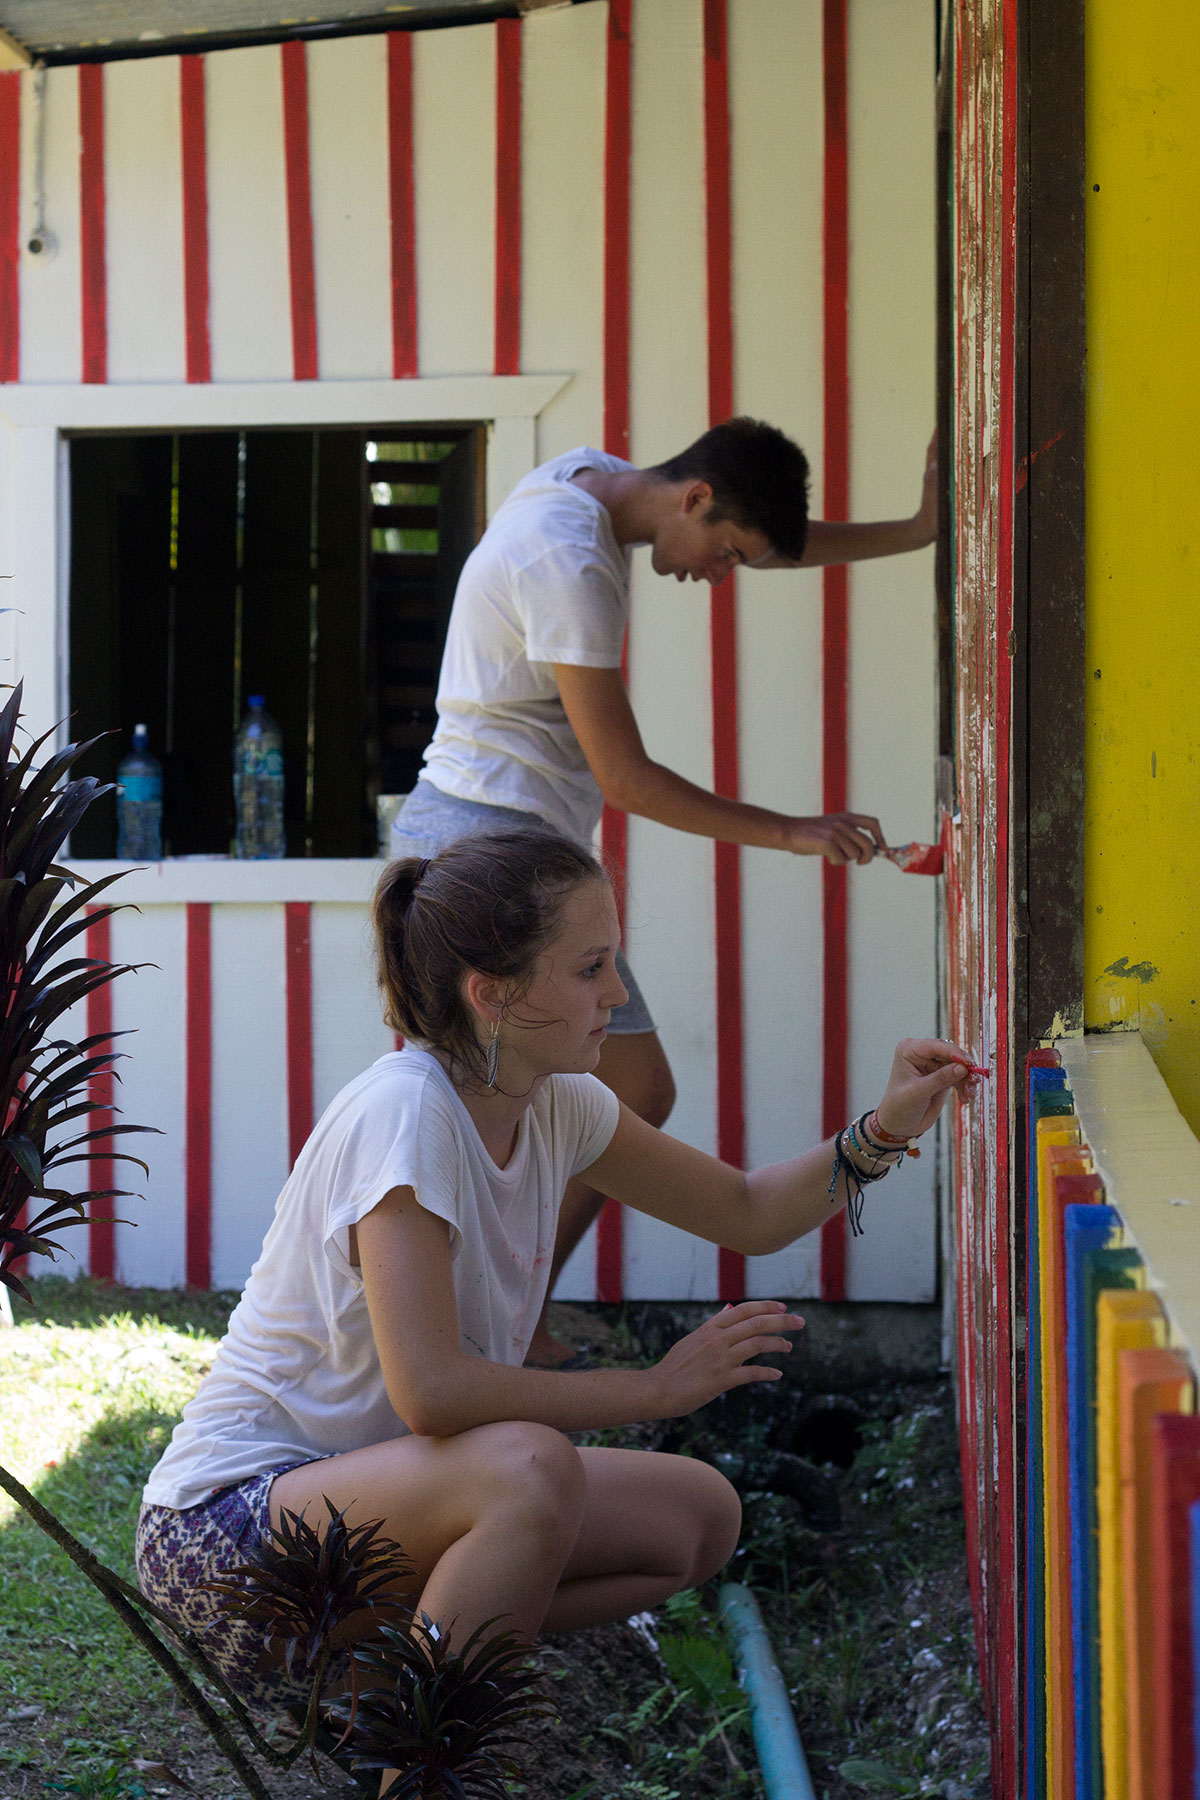 Volunteers Painting the House